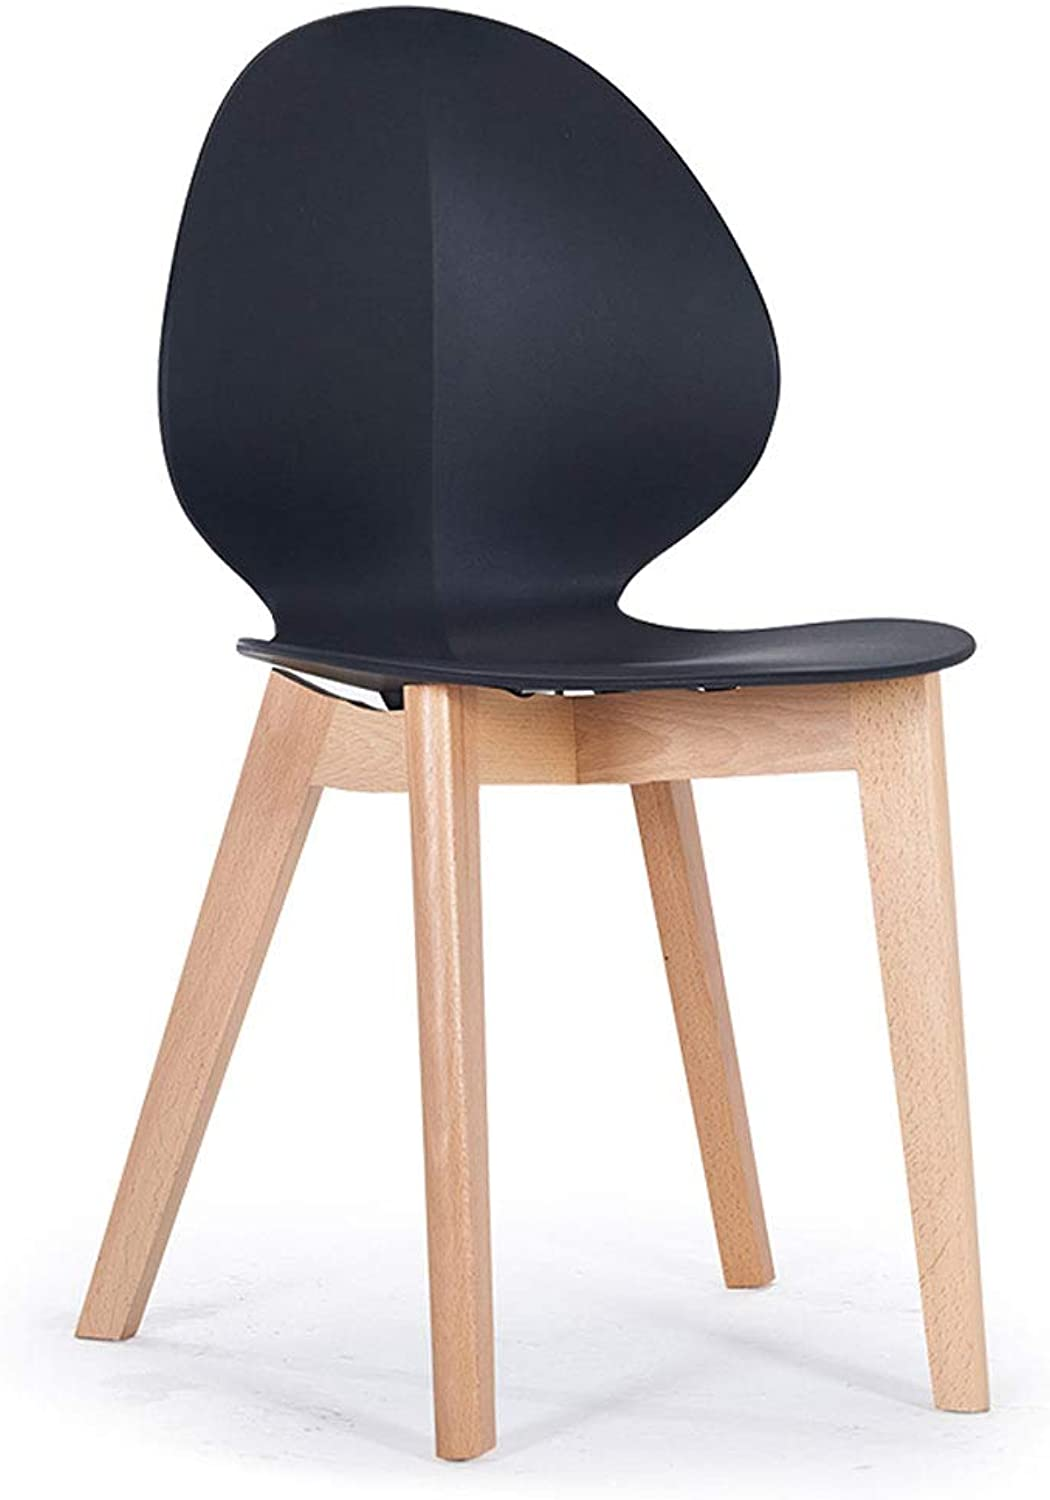 SLH Nordic Dining Chair Backrest Chair Modern Minimalist Home Study Room Negotiation Chair Stool